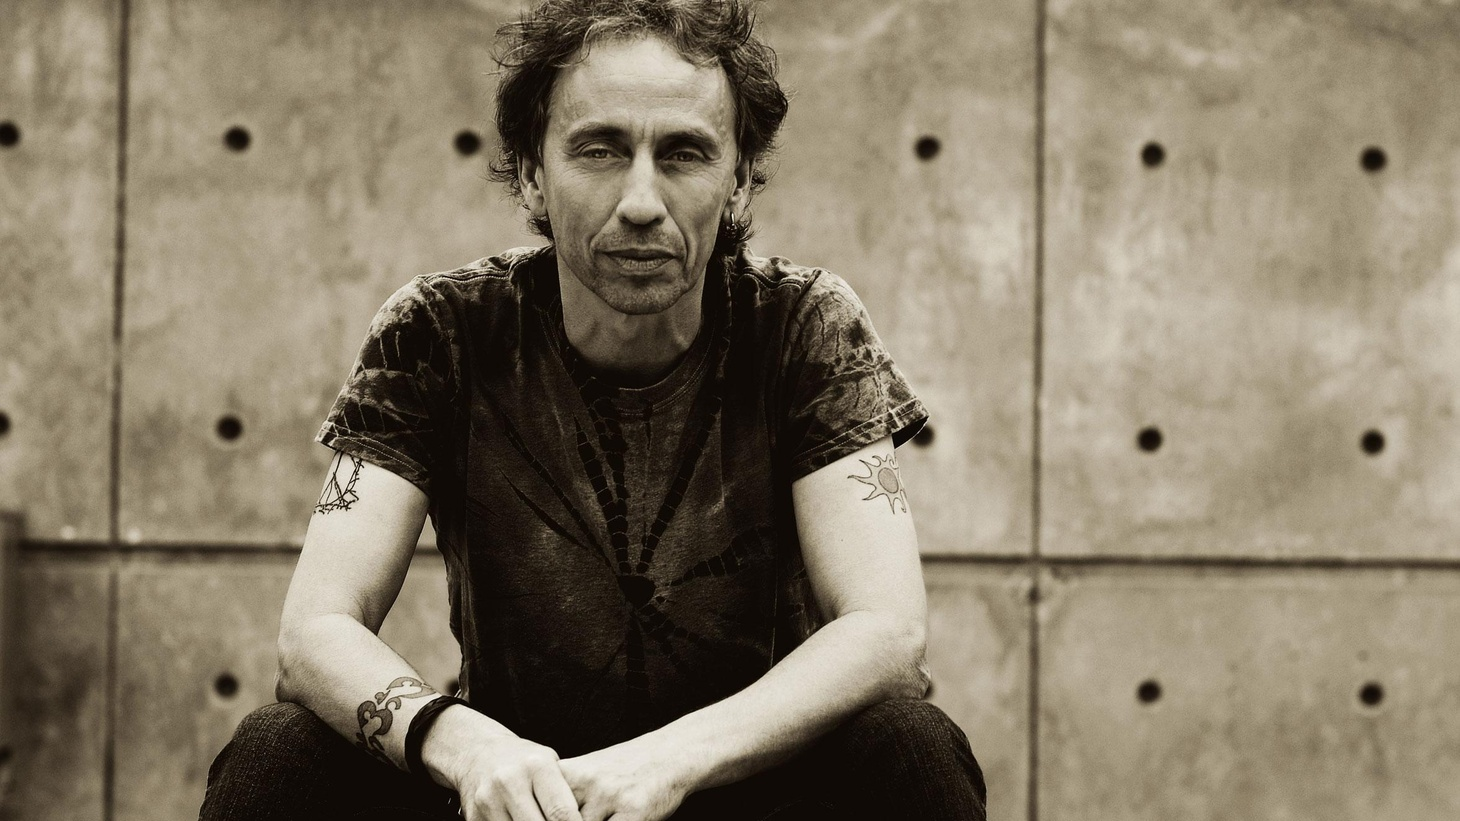 On the next edition of Sounds Eclectic, host Nic Harcourt plays new, upcoming and recent releases from Aqualung, FC Kahuna, and the latest from Massive Attack. Plus a live in-studio performance from singer-songwriter Tori Amos, all this and much more on the next Sounds Eclectic.